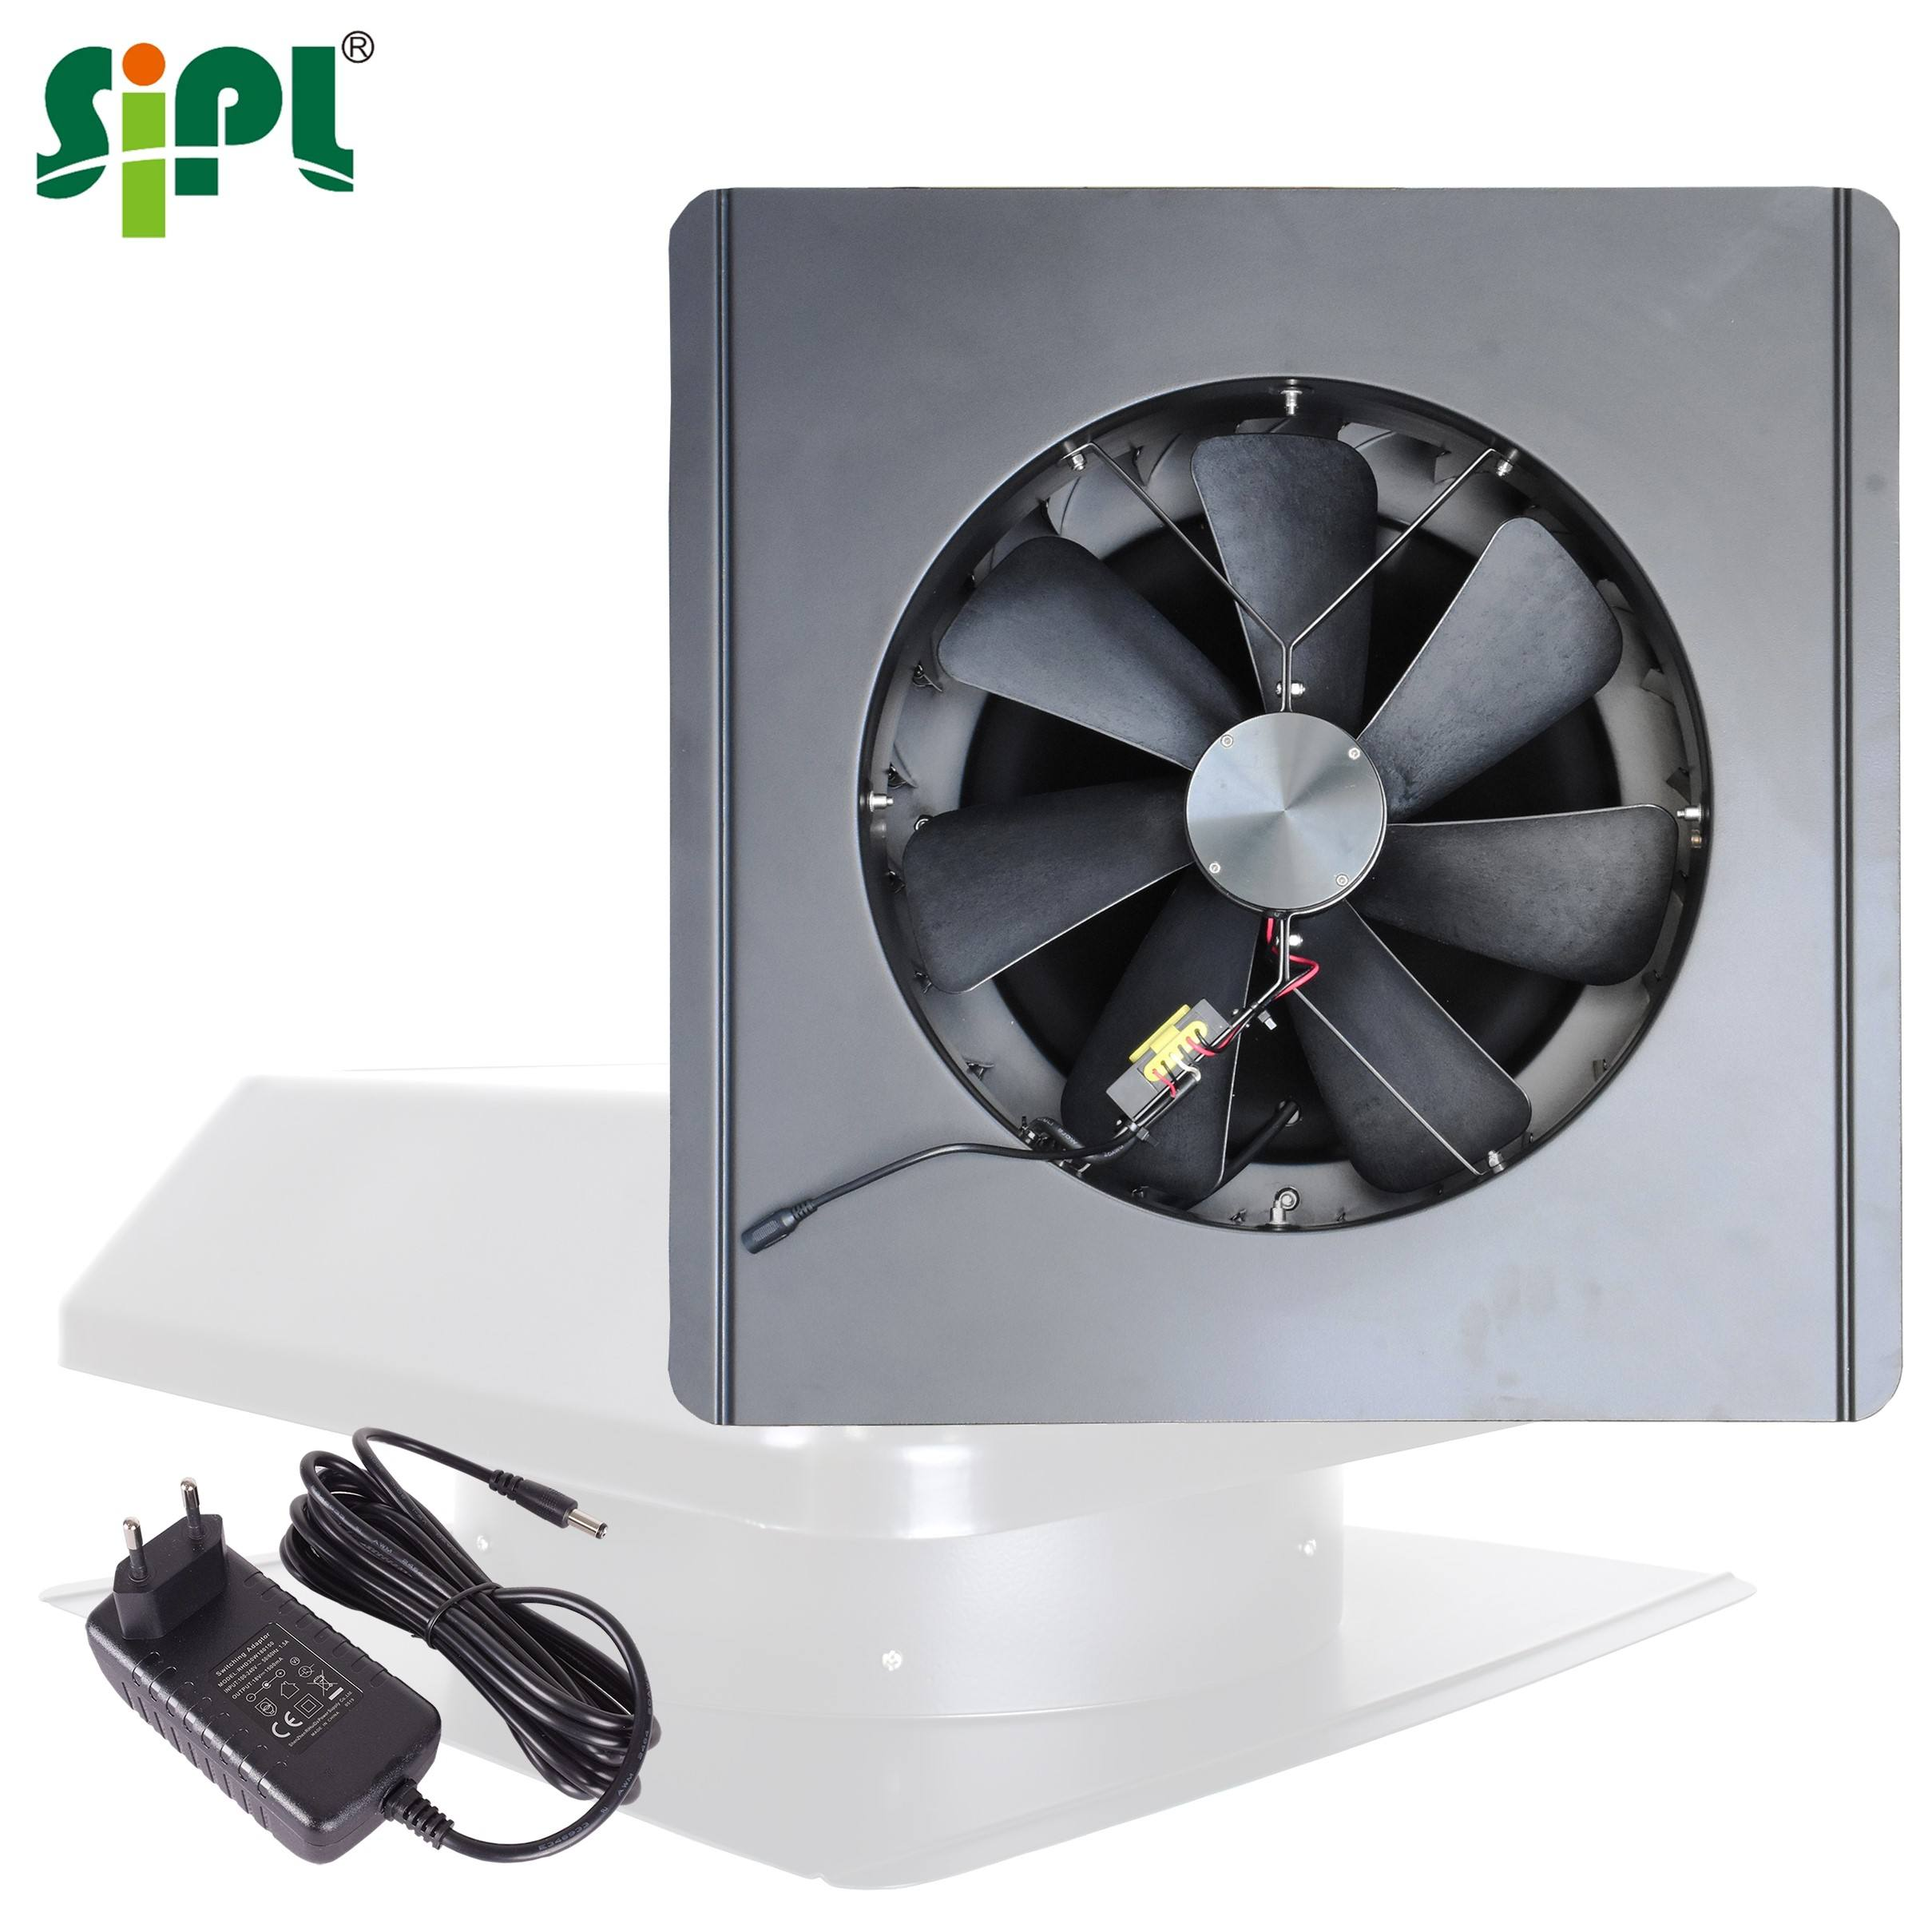 Sunny Attic Gable Vent Tools 24Hrs Fresh Air Circulation Heat Conditioning Roof Fan Solar Ceiling Ventilation Home Exhaust Fan